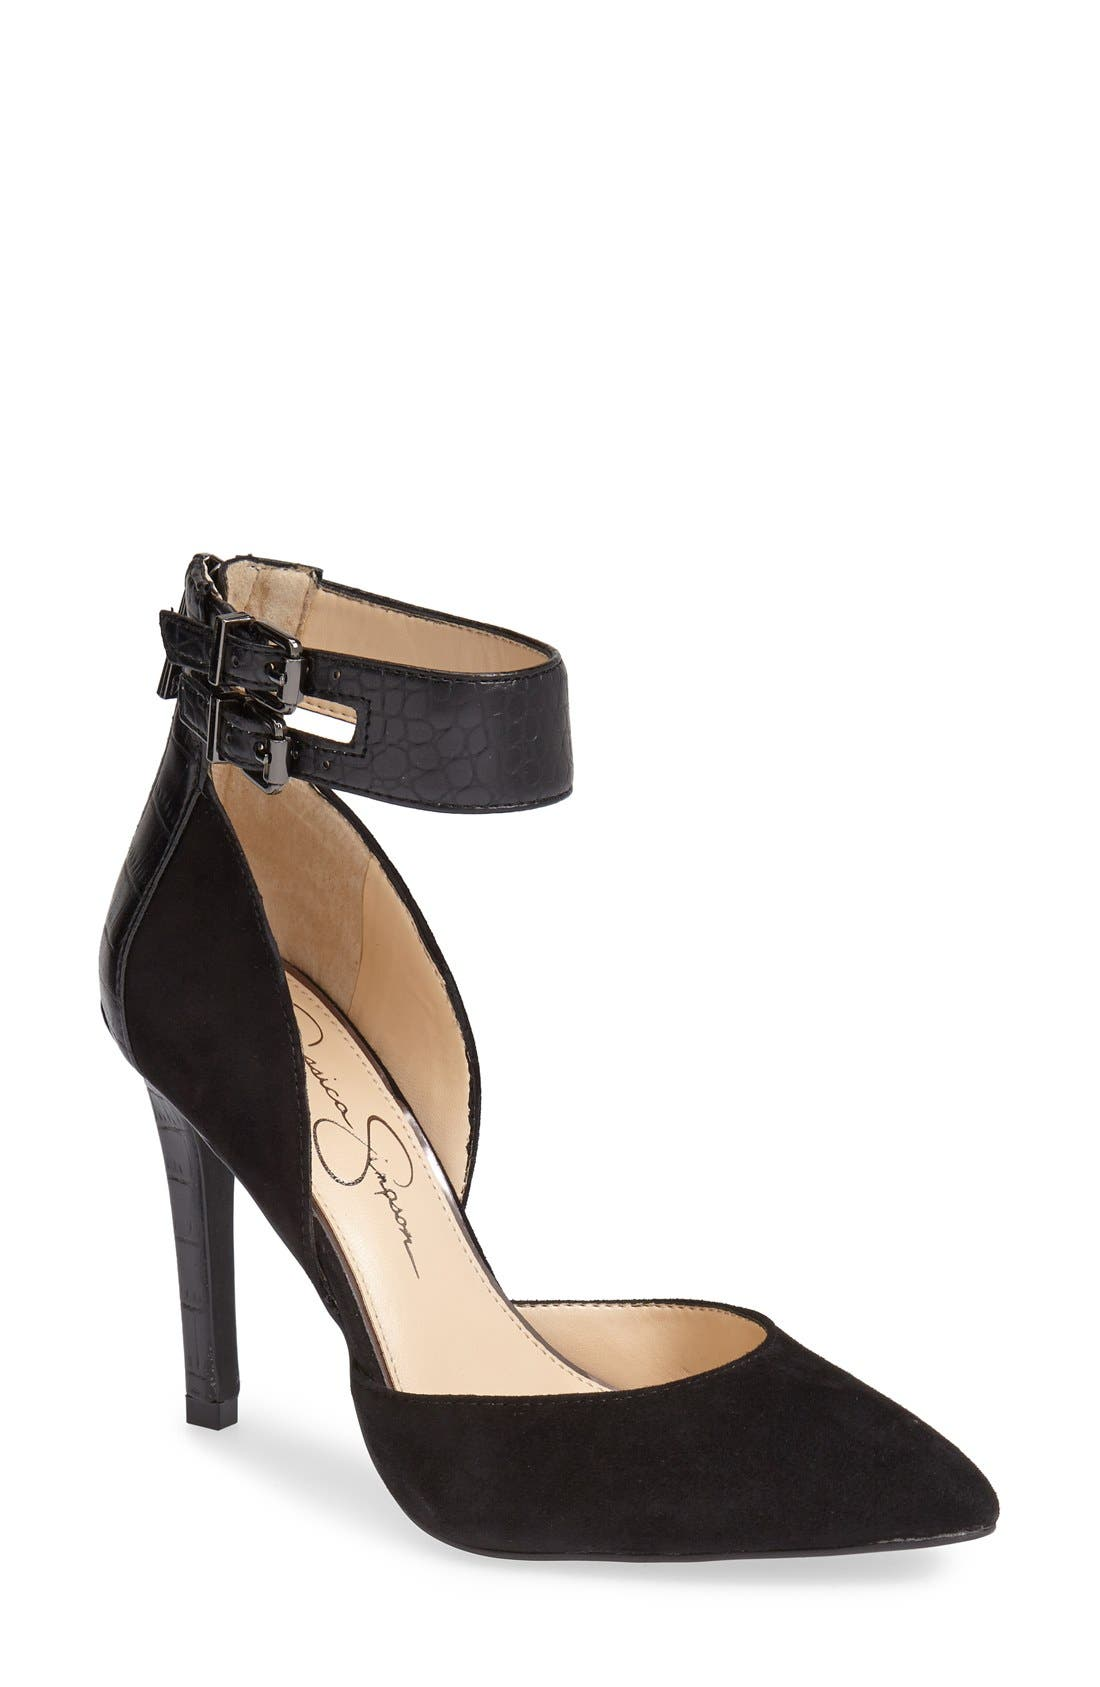 Alternate Image 1 Selected - Jessica Simpson 'Veday' d'Orsay Pump (Women)